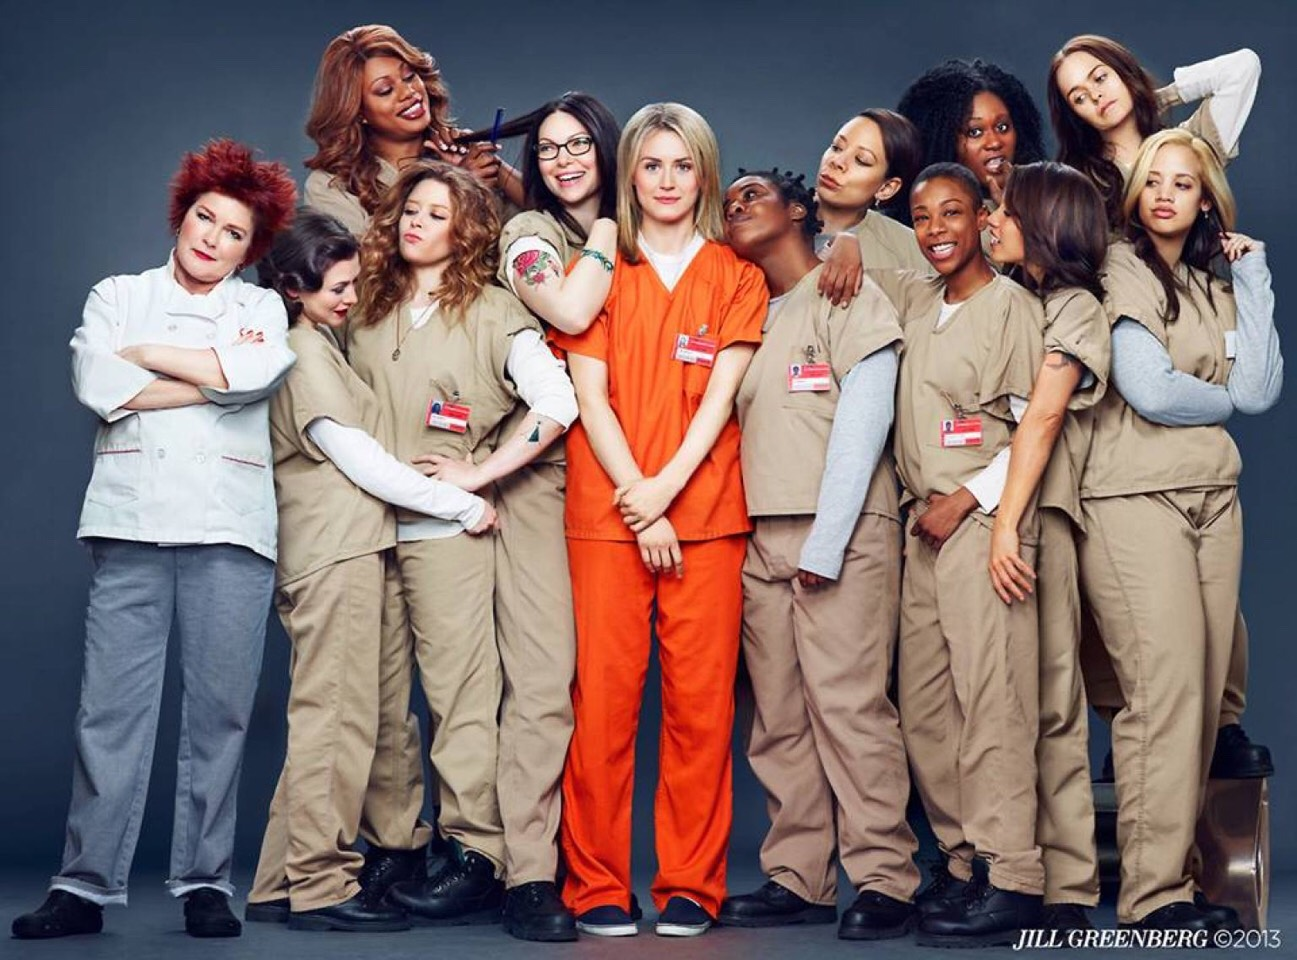 Orange is the new black 😋😋😋 (contains a lot of nudity)